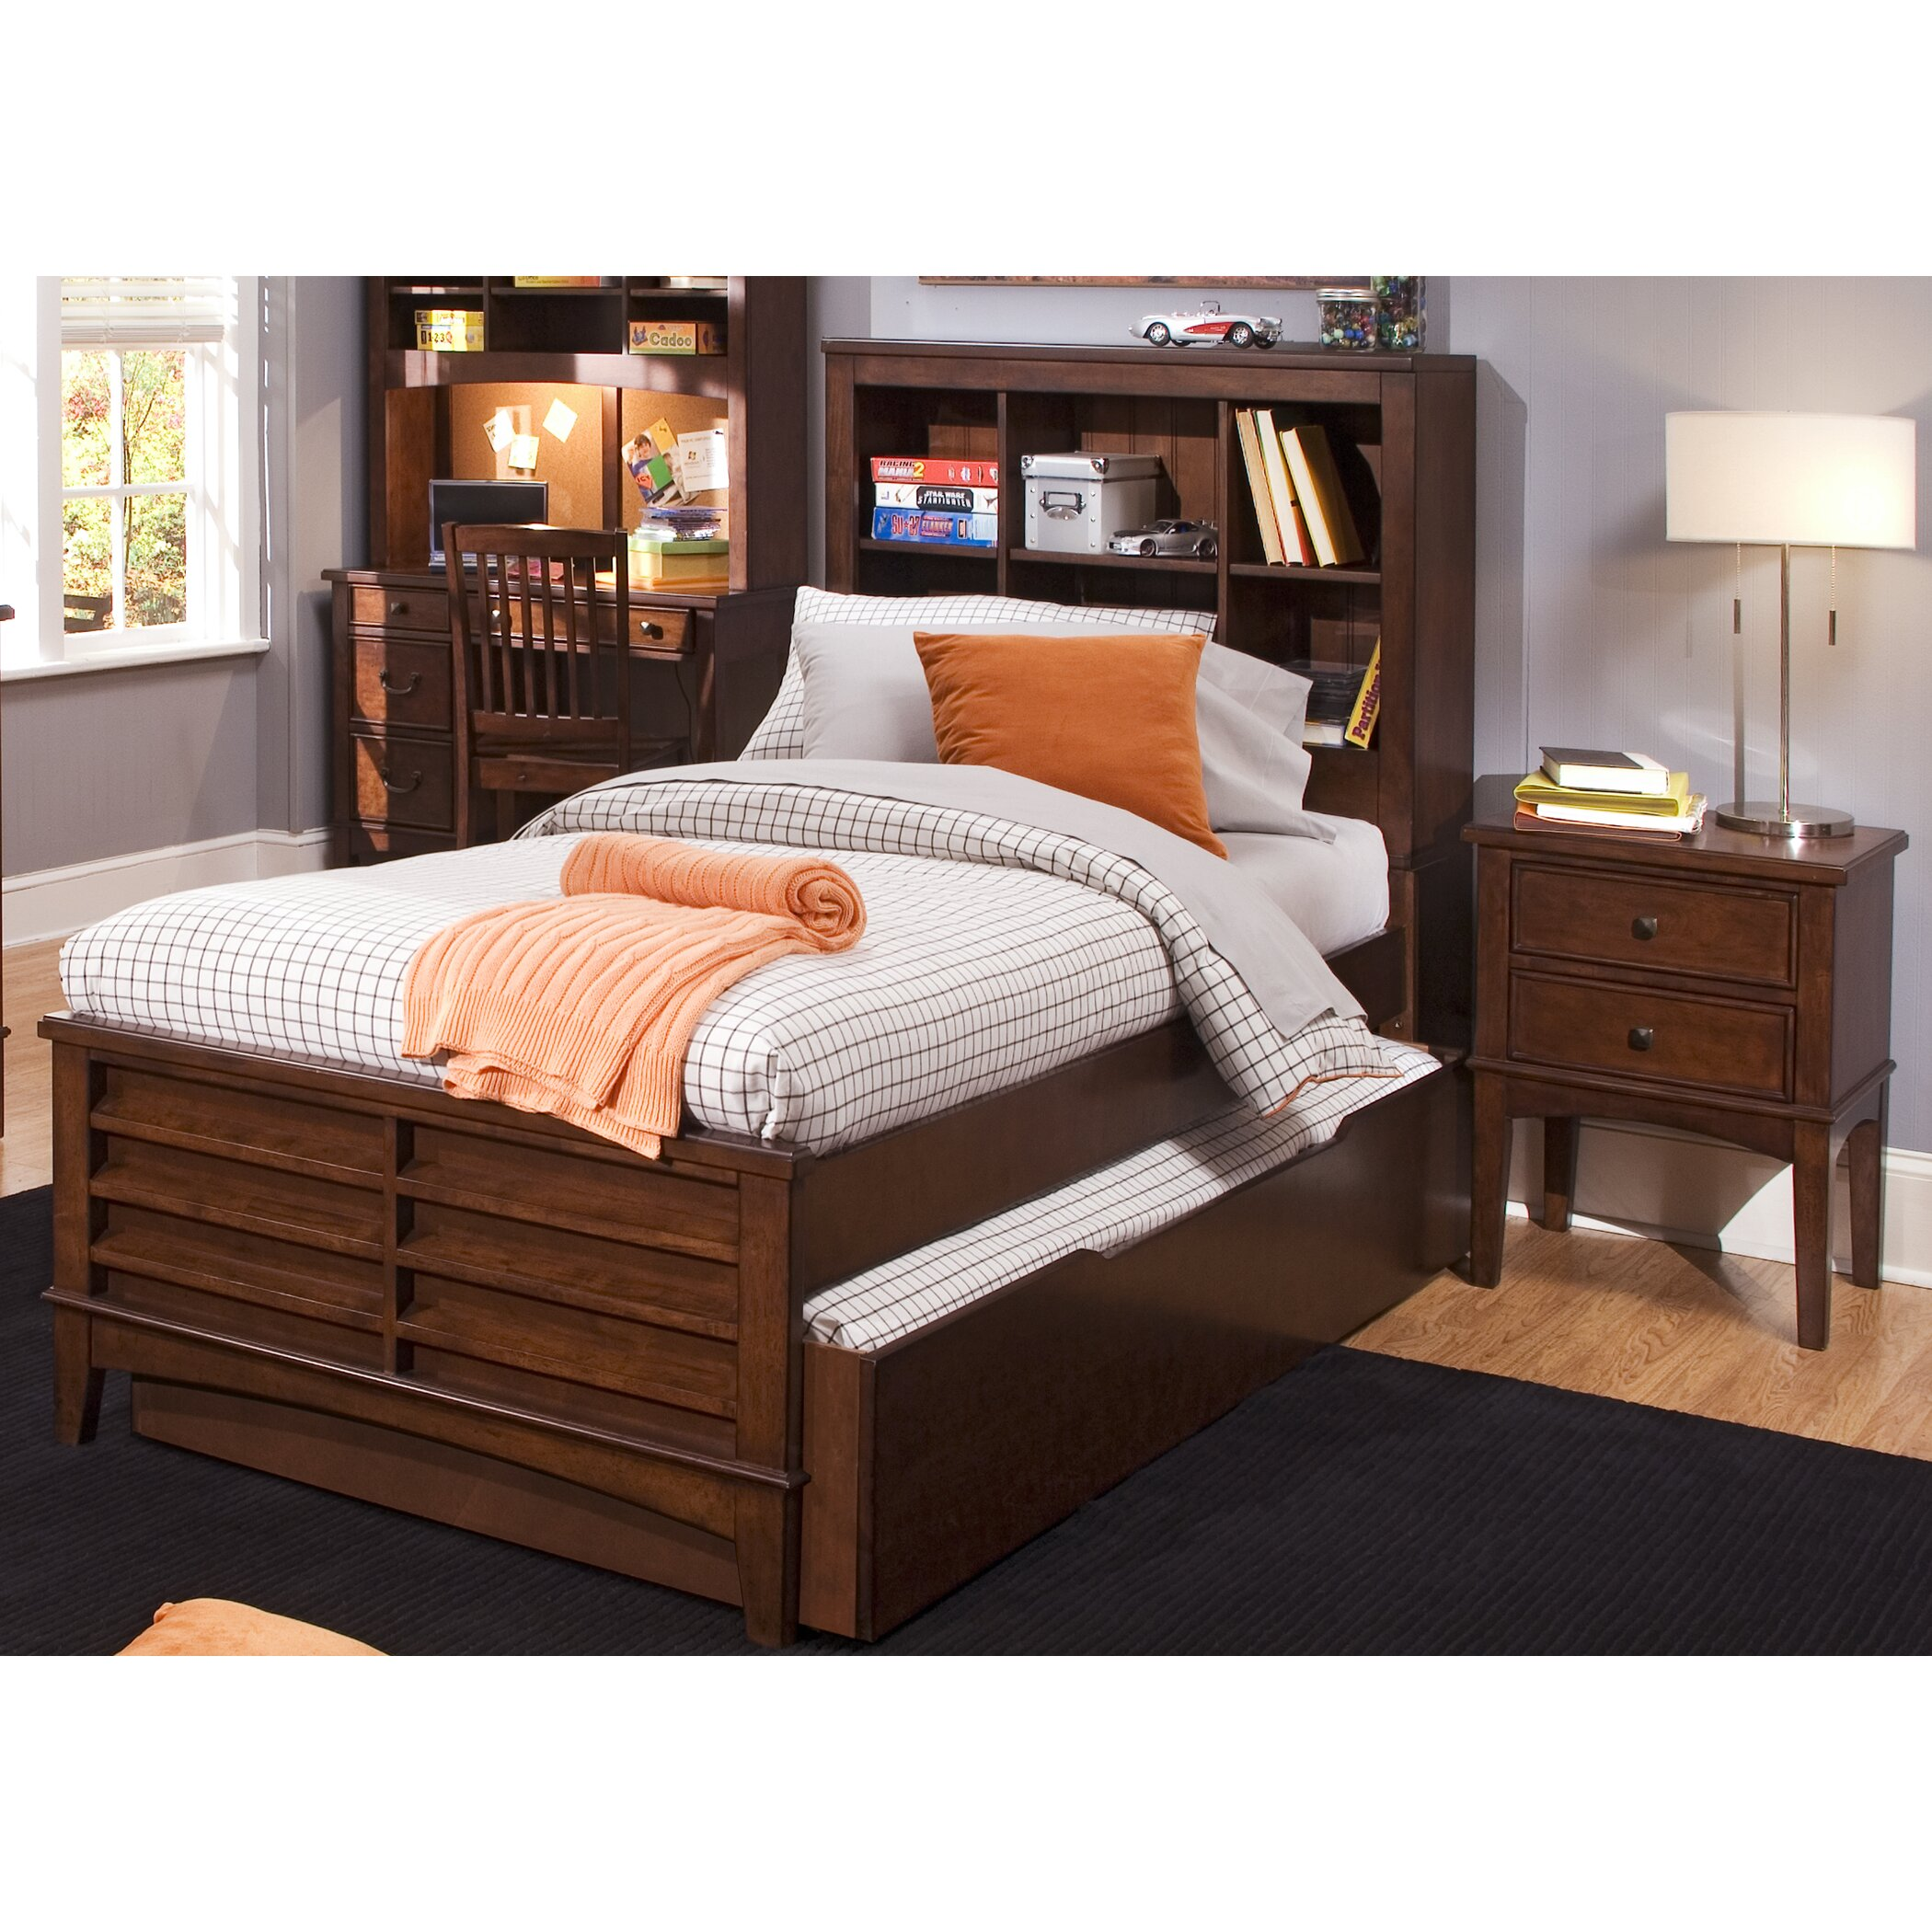 Liberty furniture chelsea square youth bedroom bookcase - Bedroom furniture bookcase headboard ...